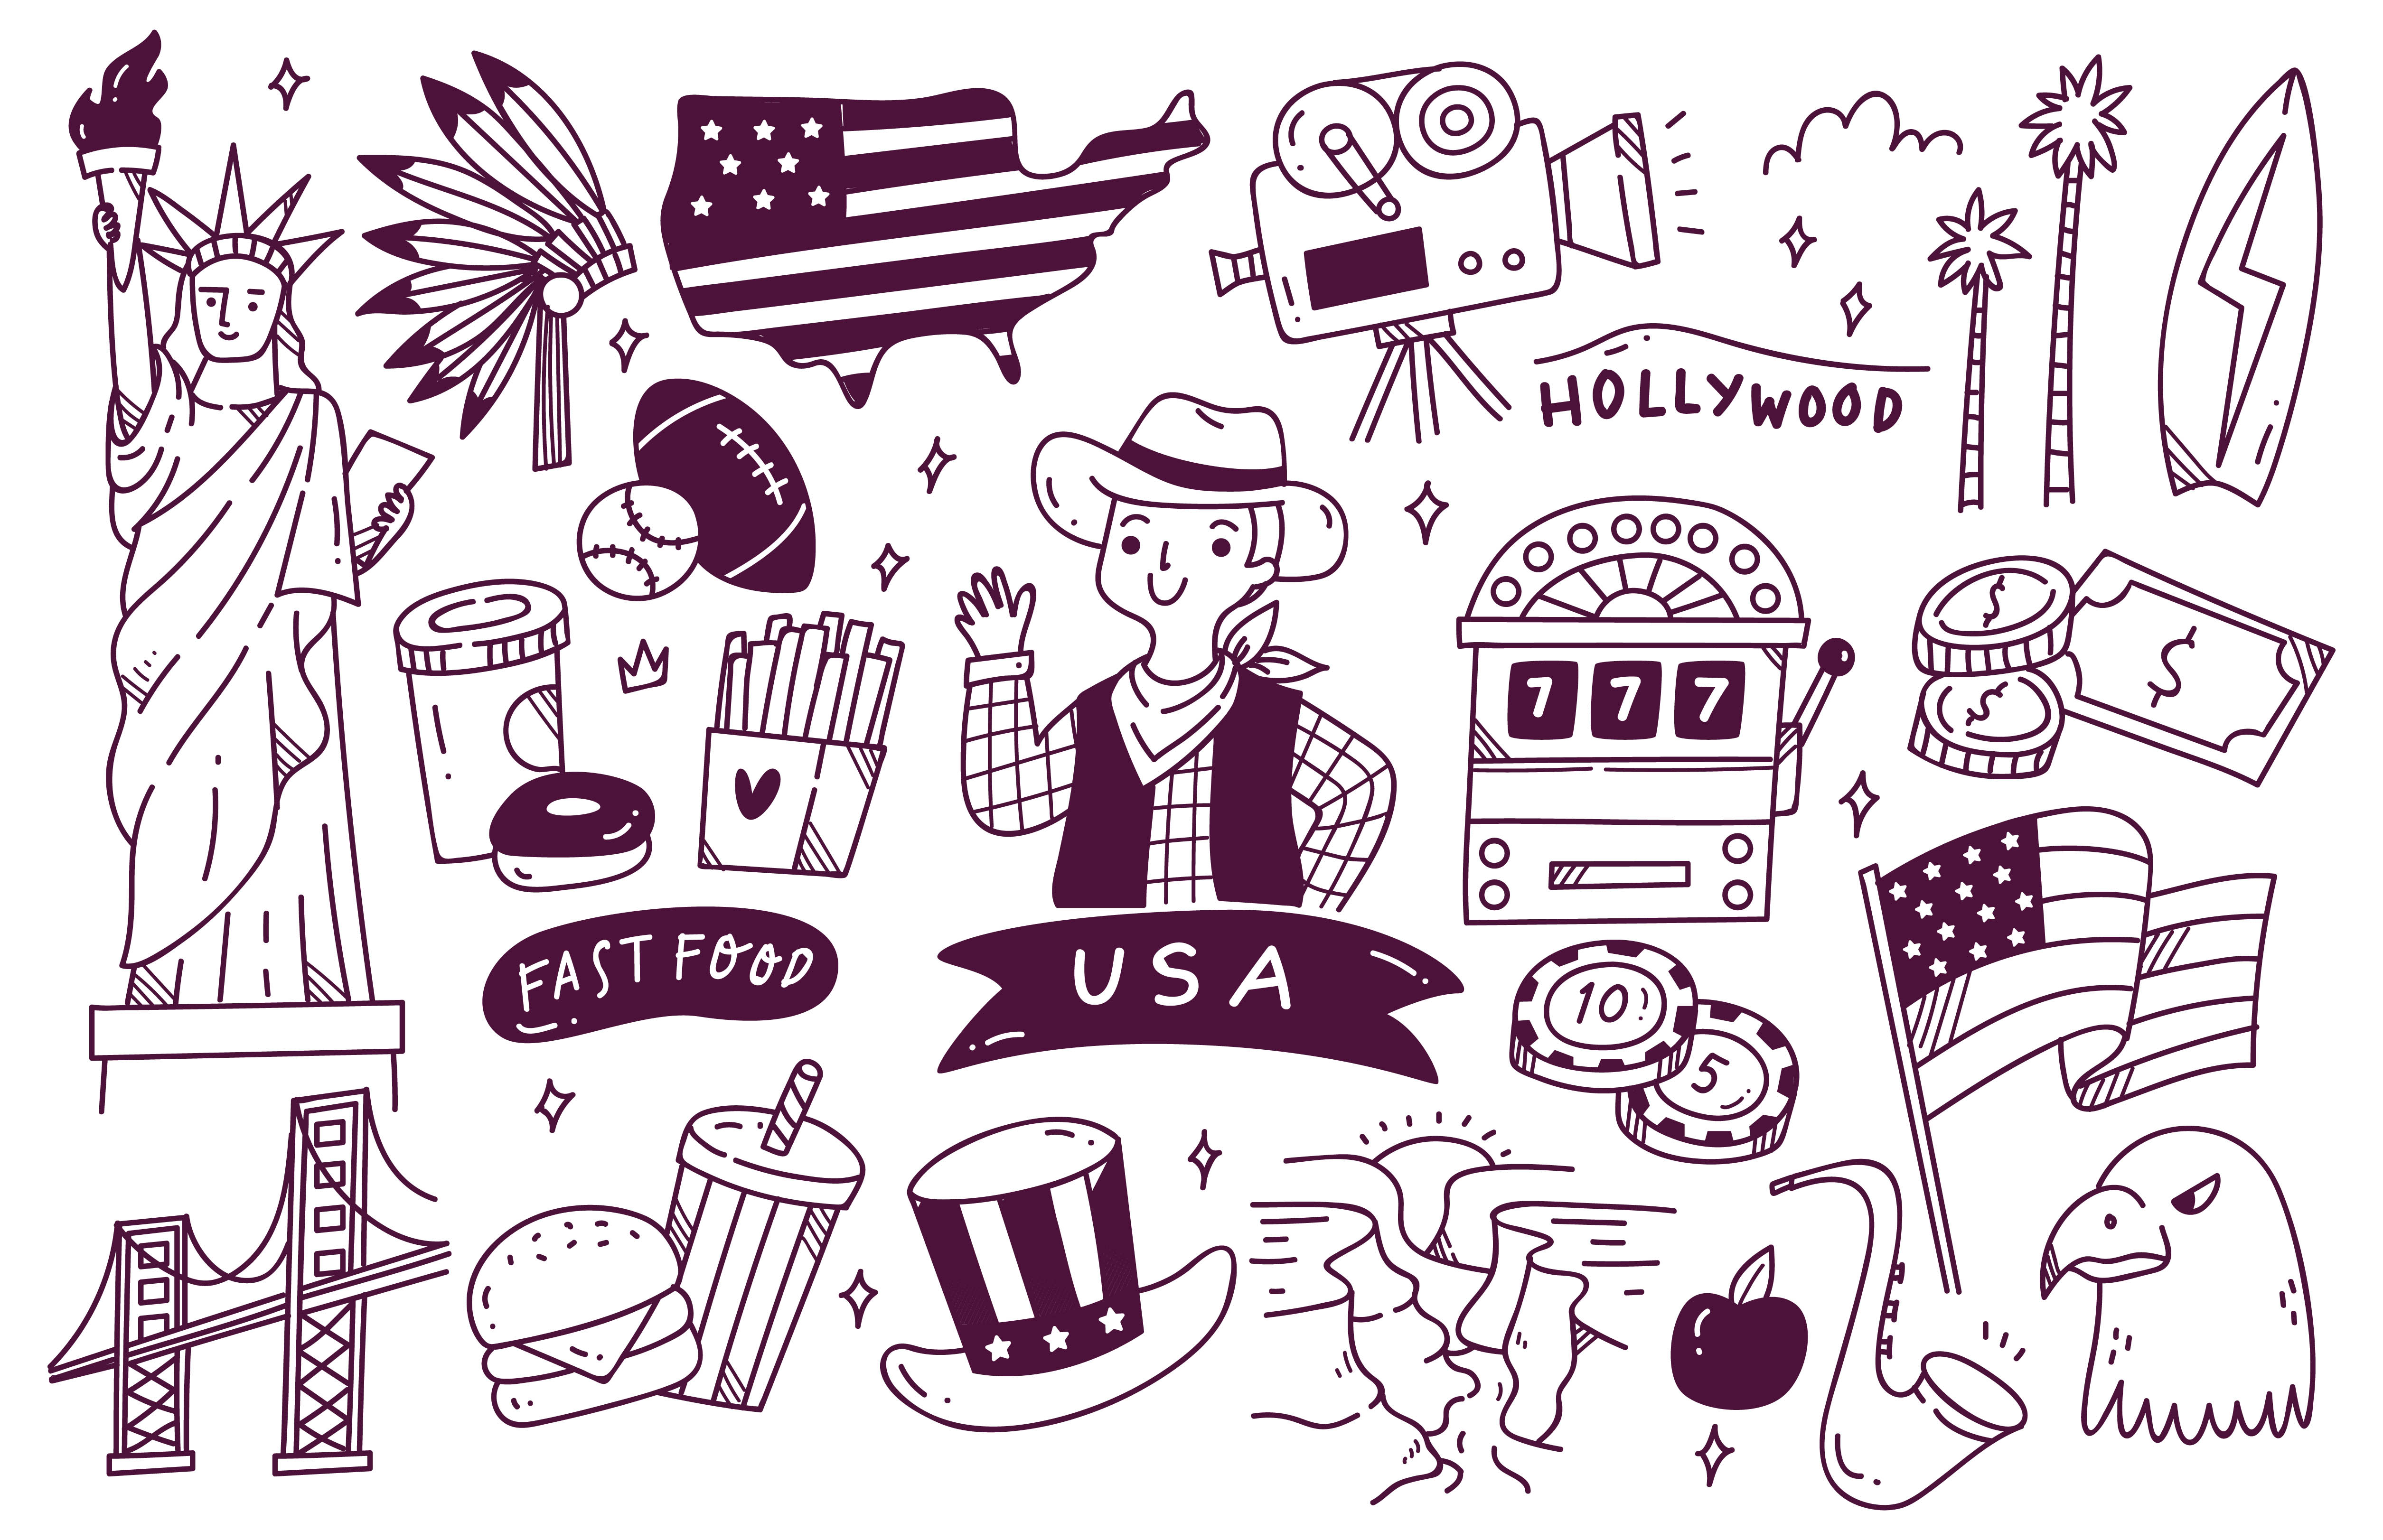 Download Free America Travel Destination Doodle Graphic By Big Barn Doodles for Cricut Explore, Silhouette and other cutting machines.